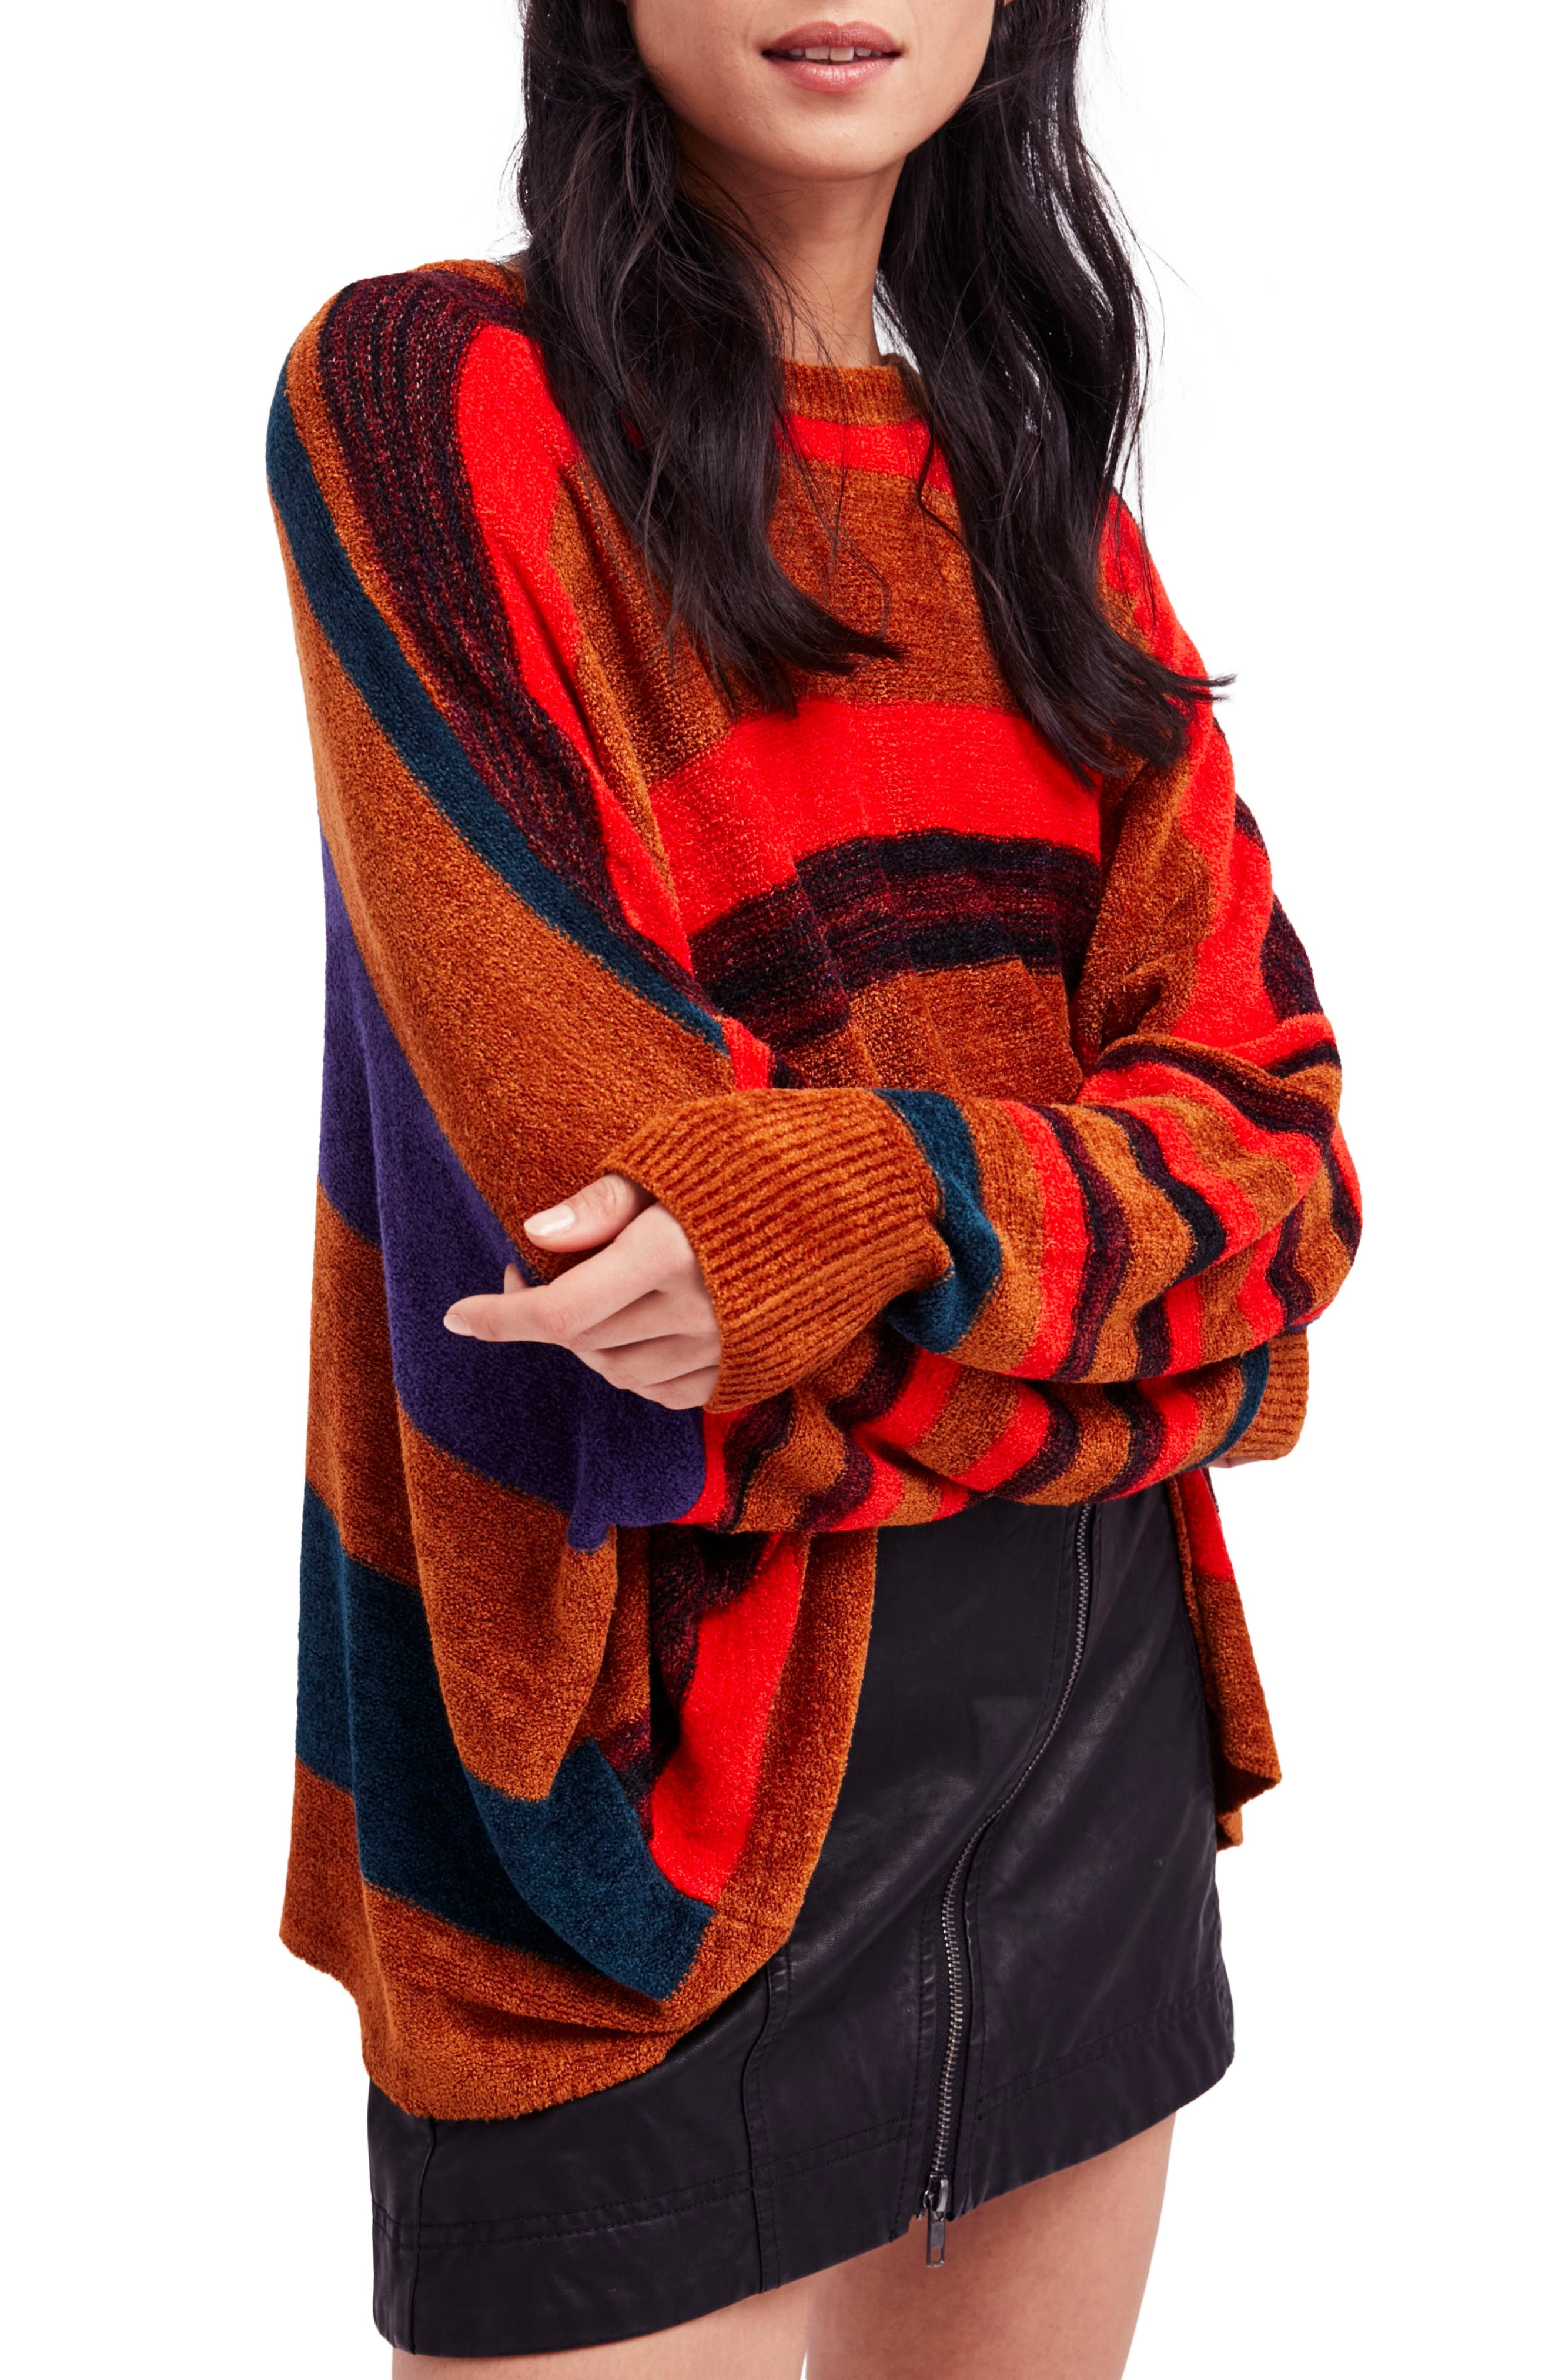 All About You Pullover,                         Main,                         color, Terracotta